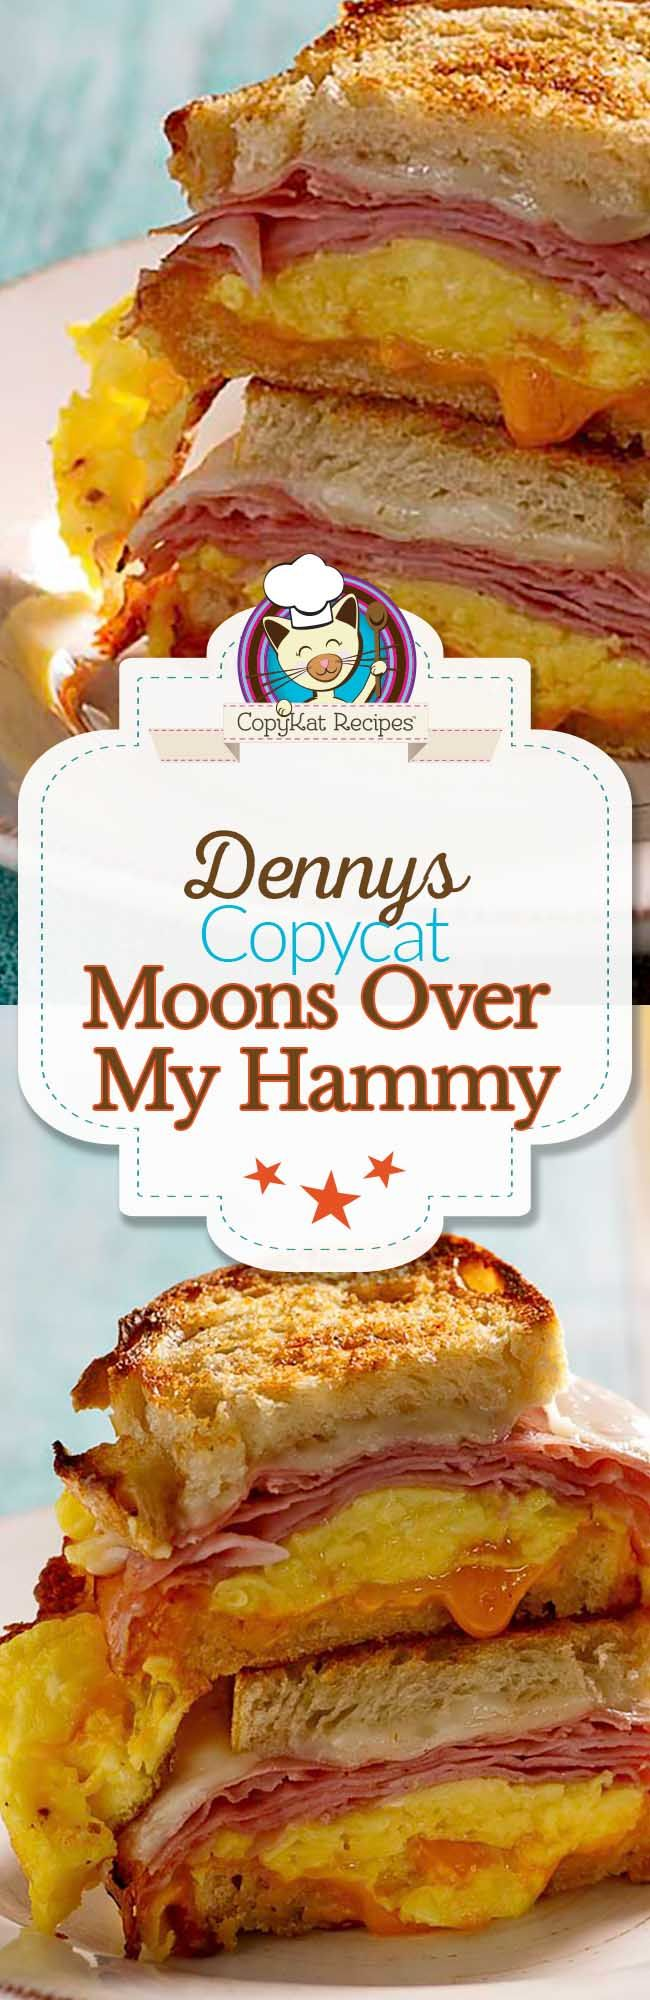 You can recreate the Denny's Moons Over My Hammy with this copycat recipe.